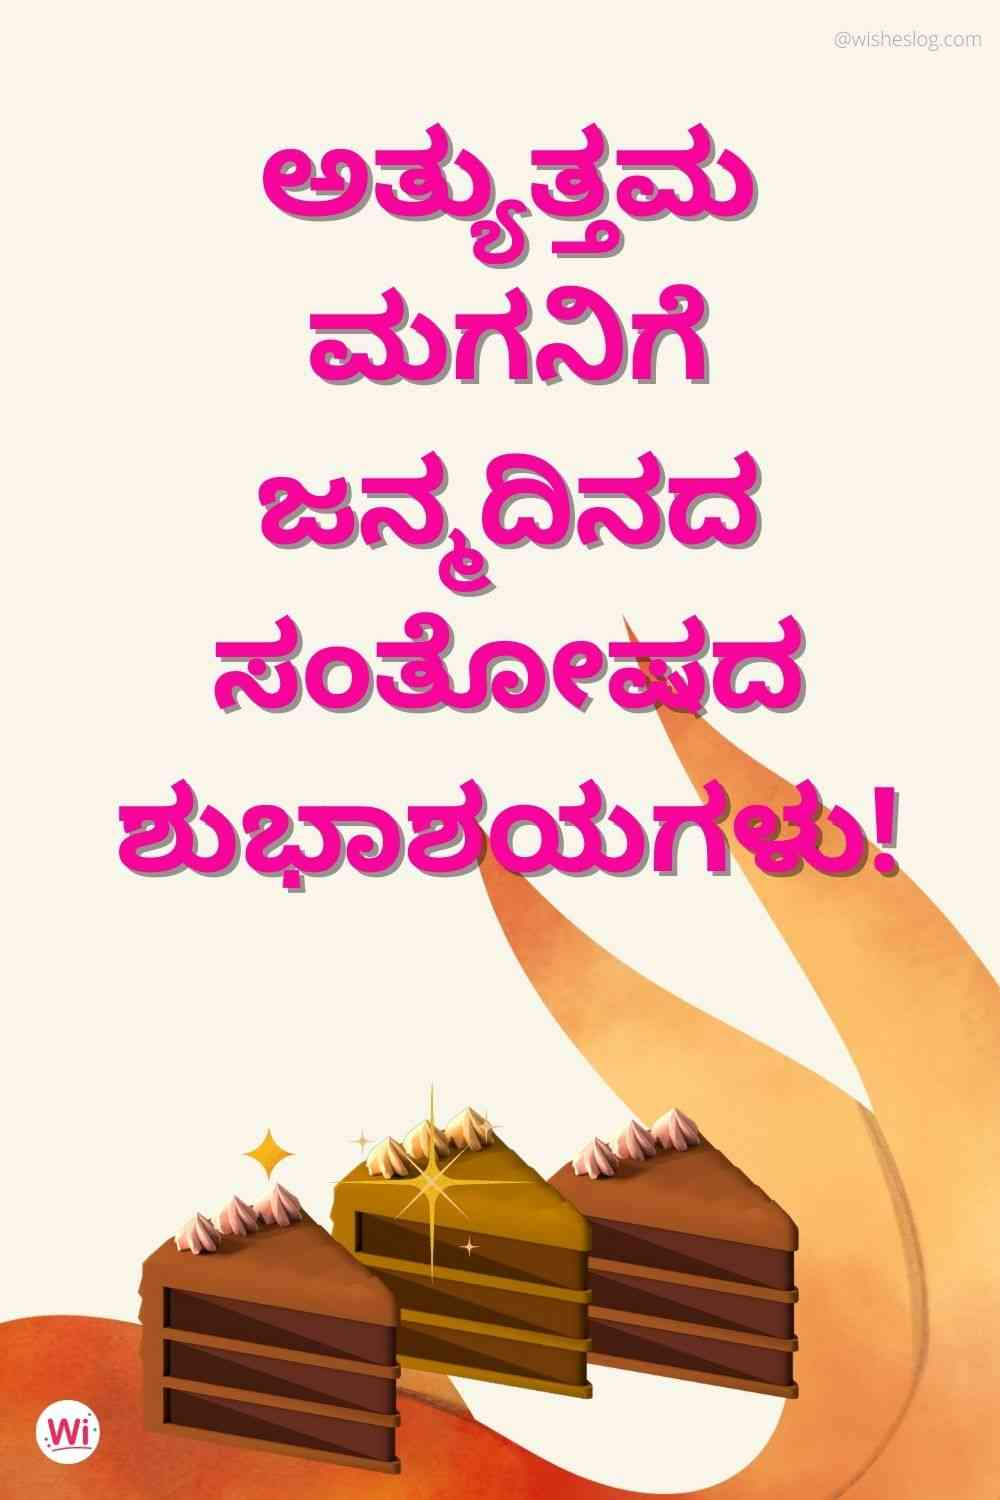 happy birthday wishes for son in kannada